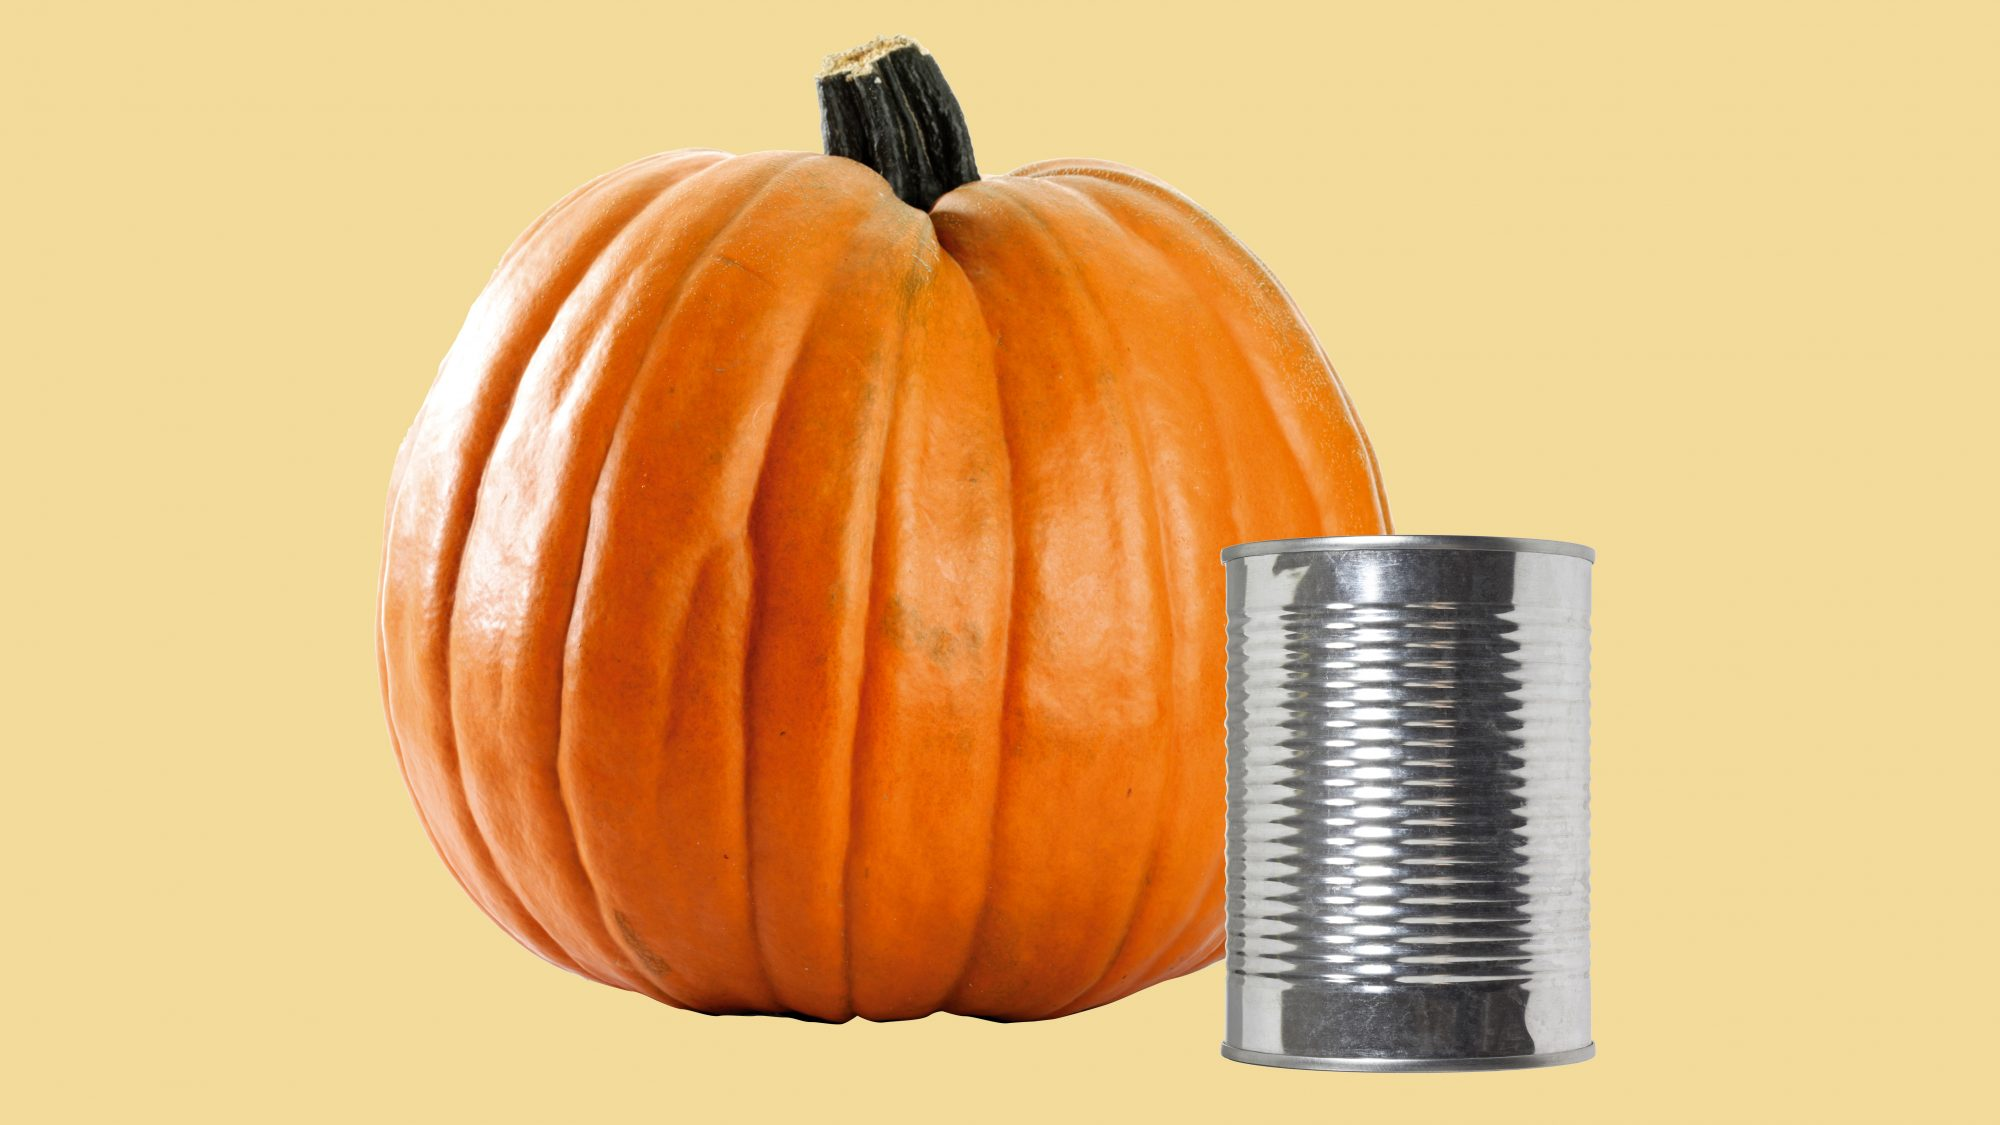 canned pumpkin vs. pumpkin pie mix